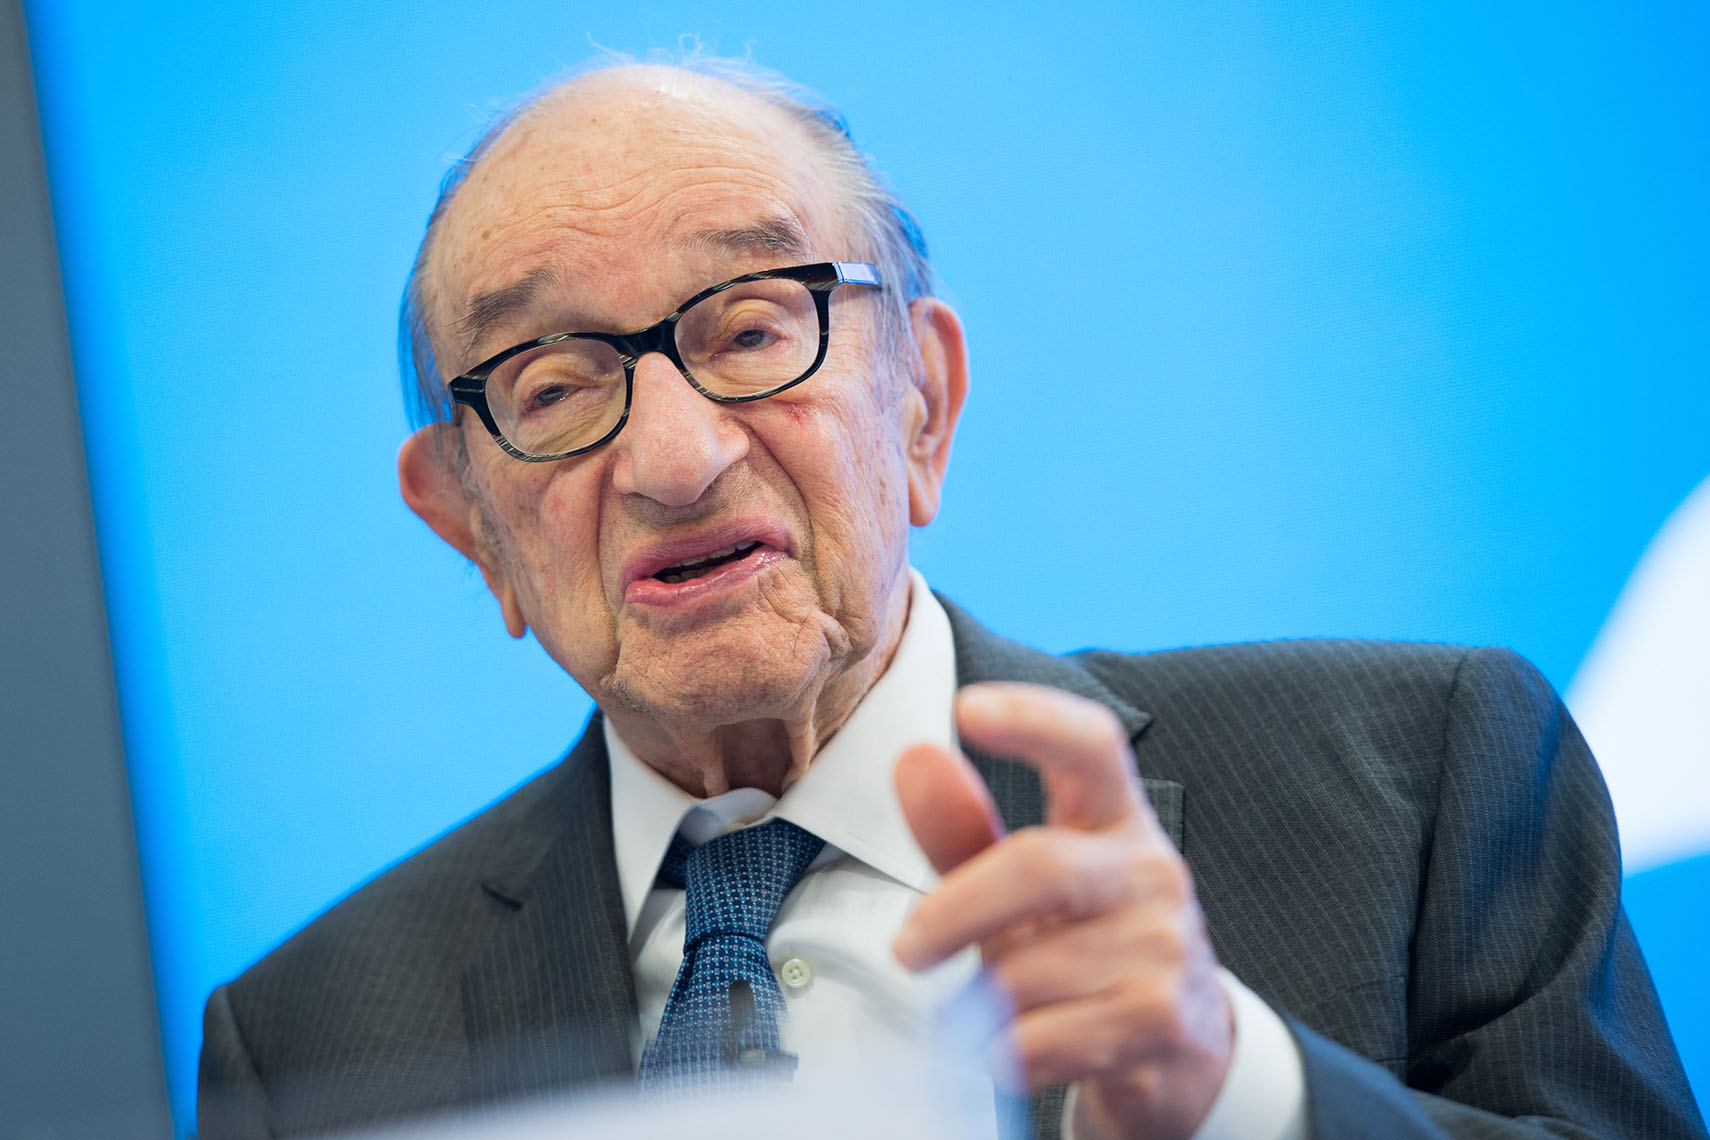 Alan Greenspan | Aaron Clamage